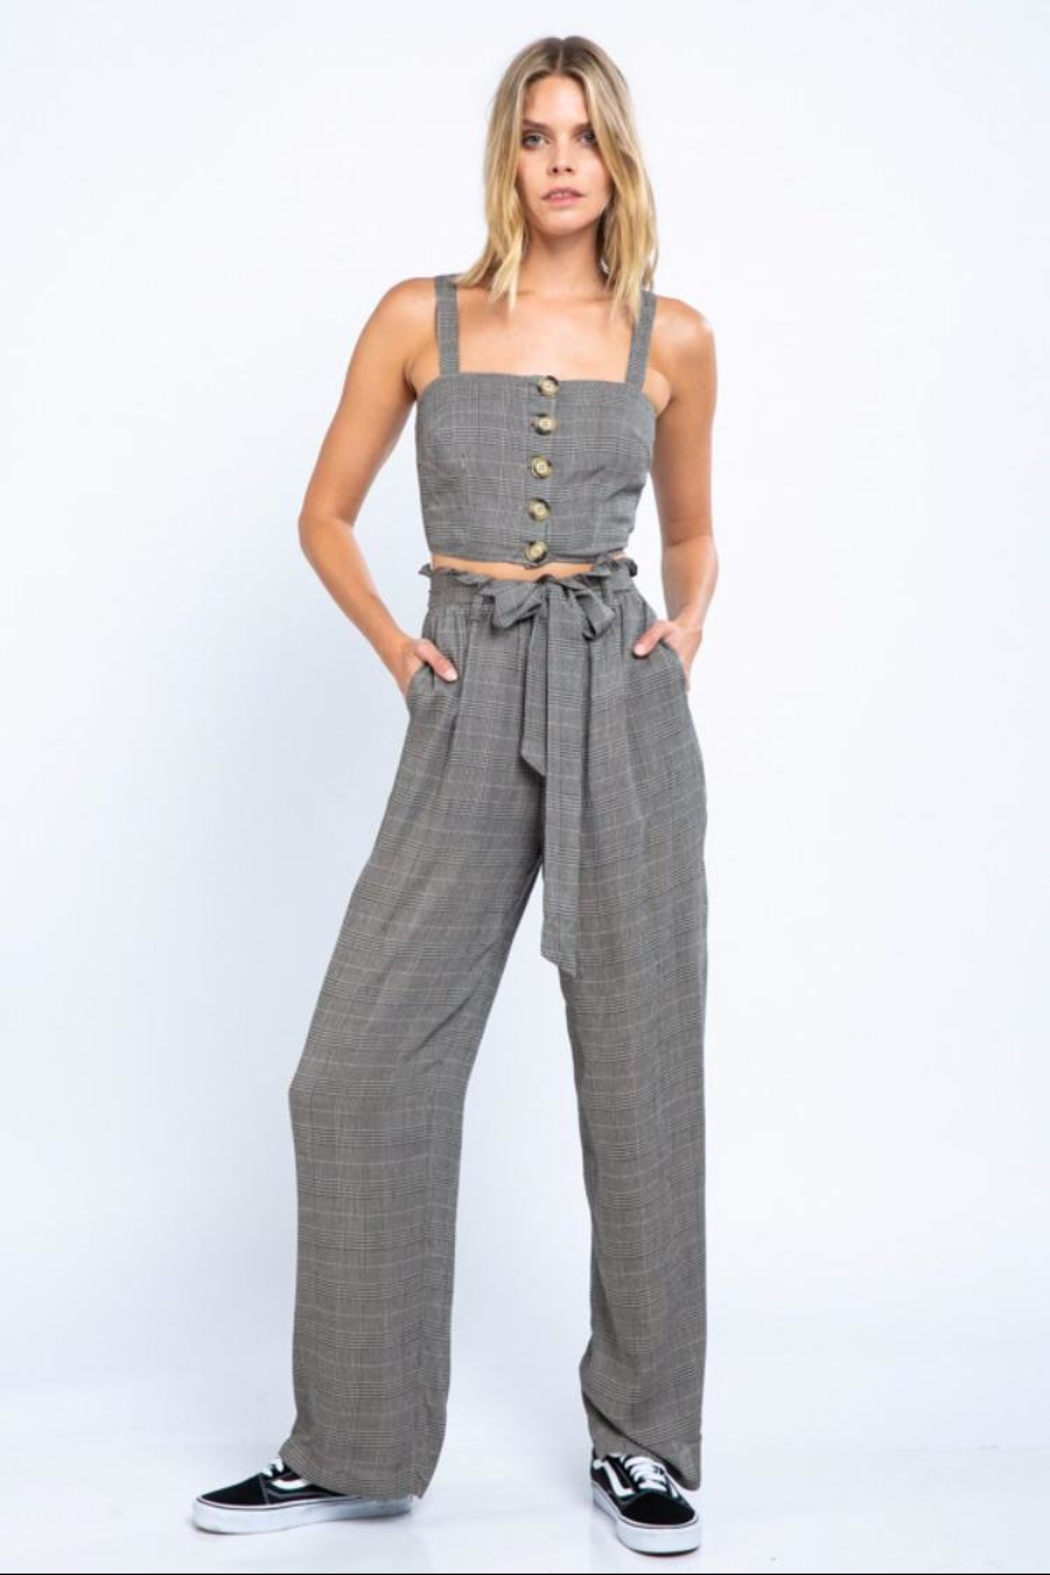 skylar madison Glen-Plaid Pant Set - Front Cropped Image